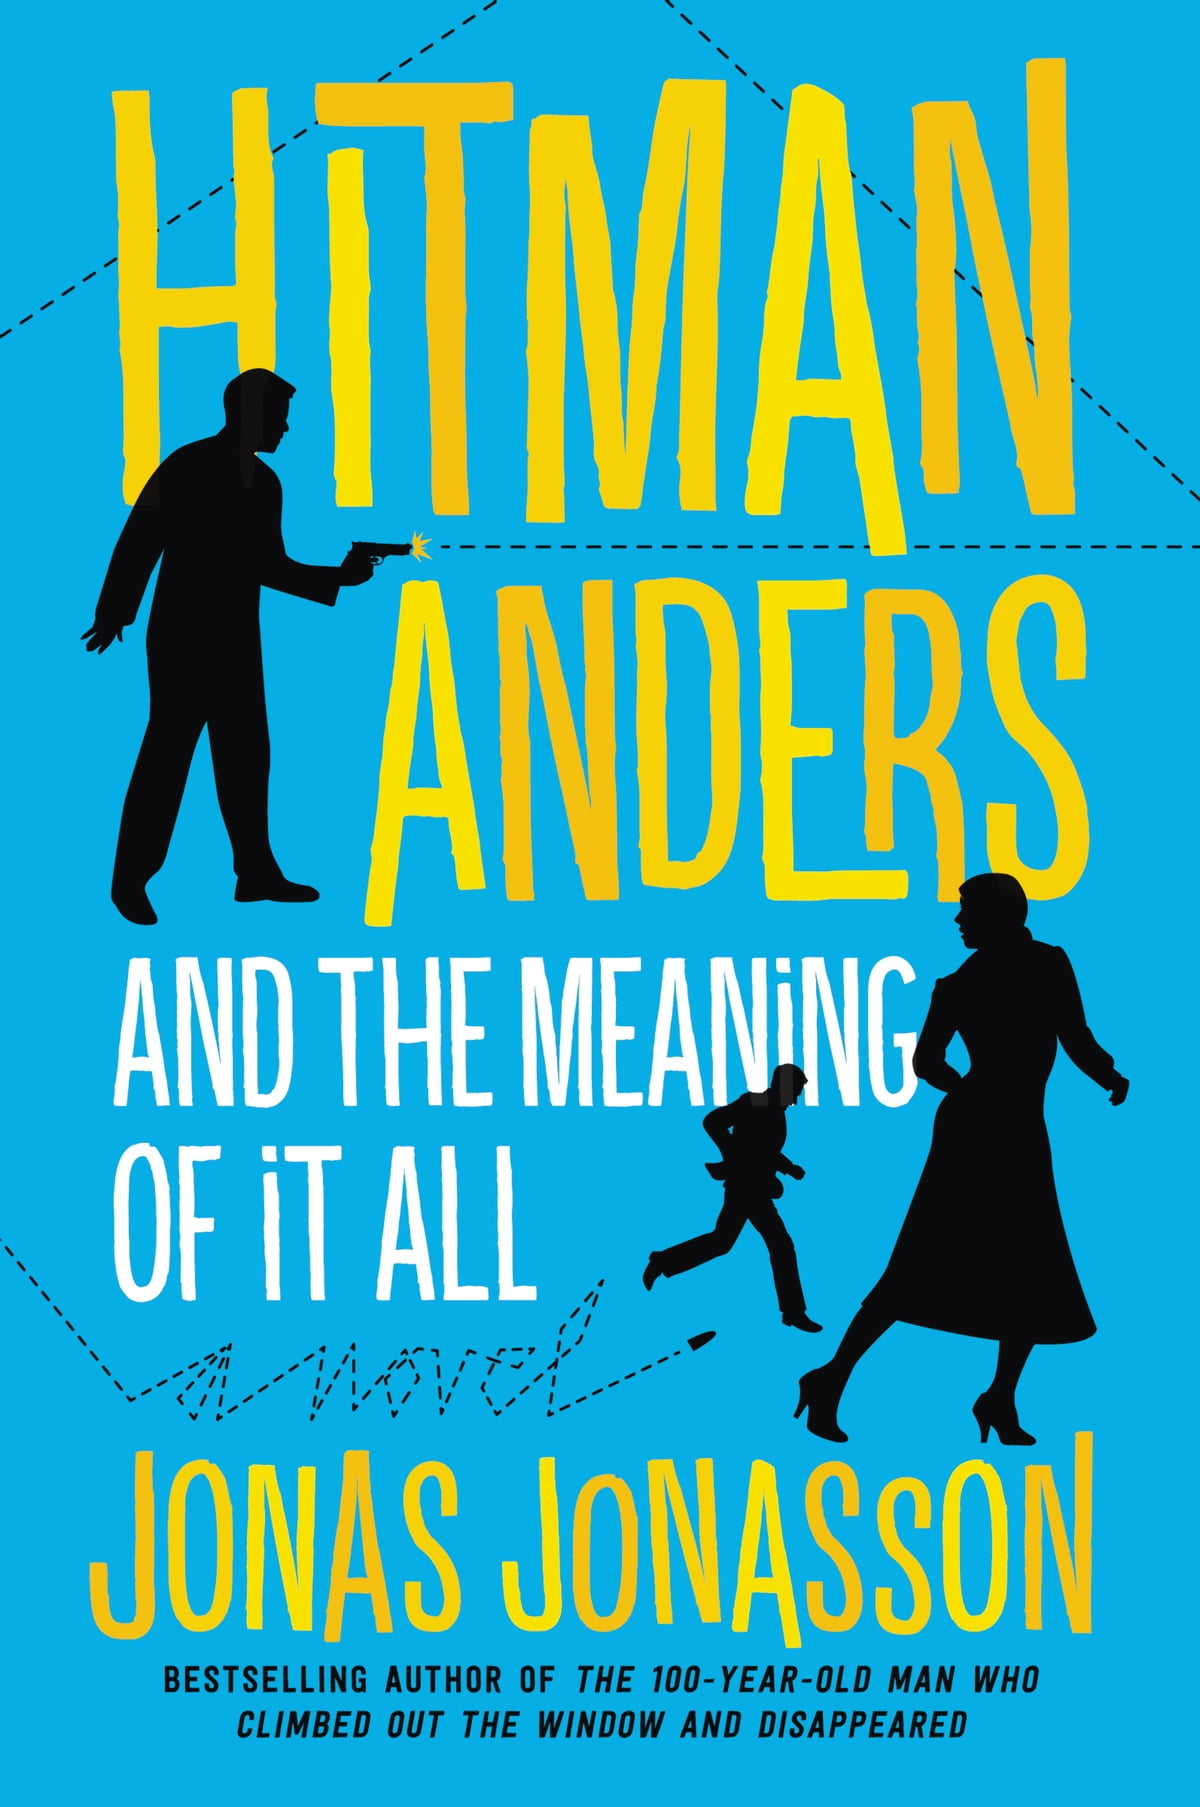 Hitman Anders and the Meaning of It All ebook by Jonas Jonasson, Rachel  Willson-